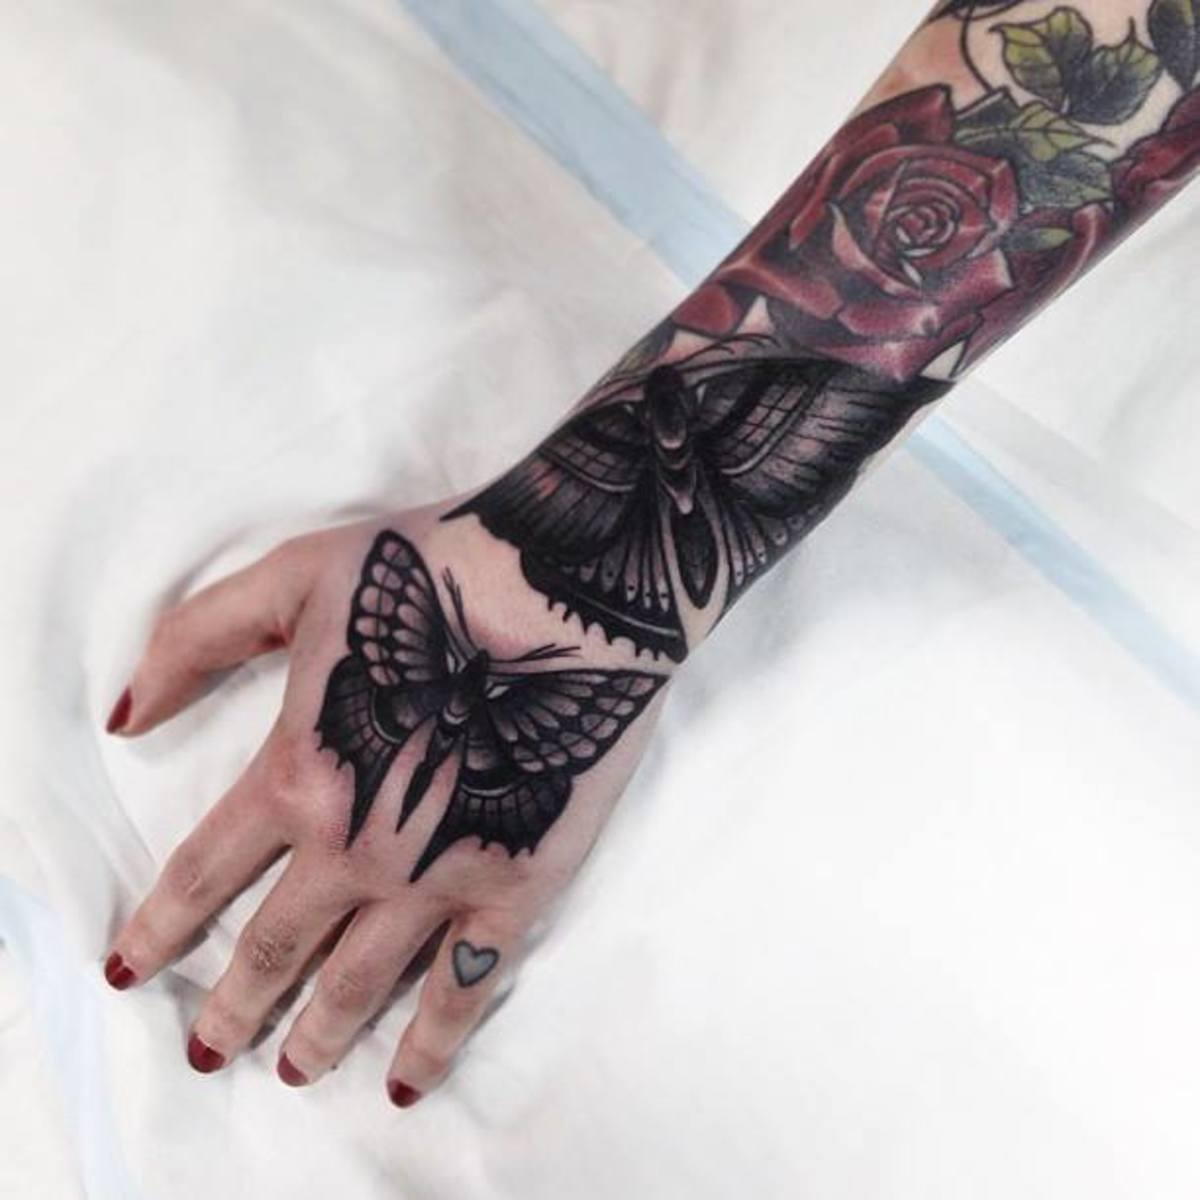 Complete sleeve including butterfly on hand